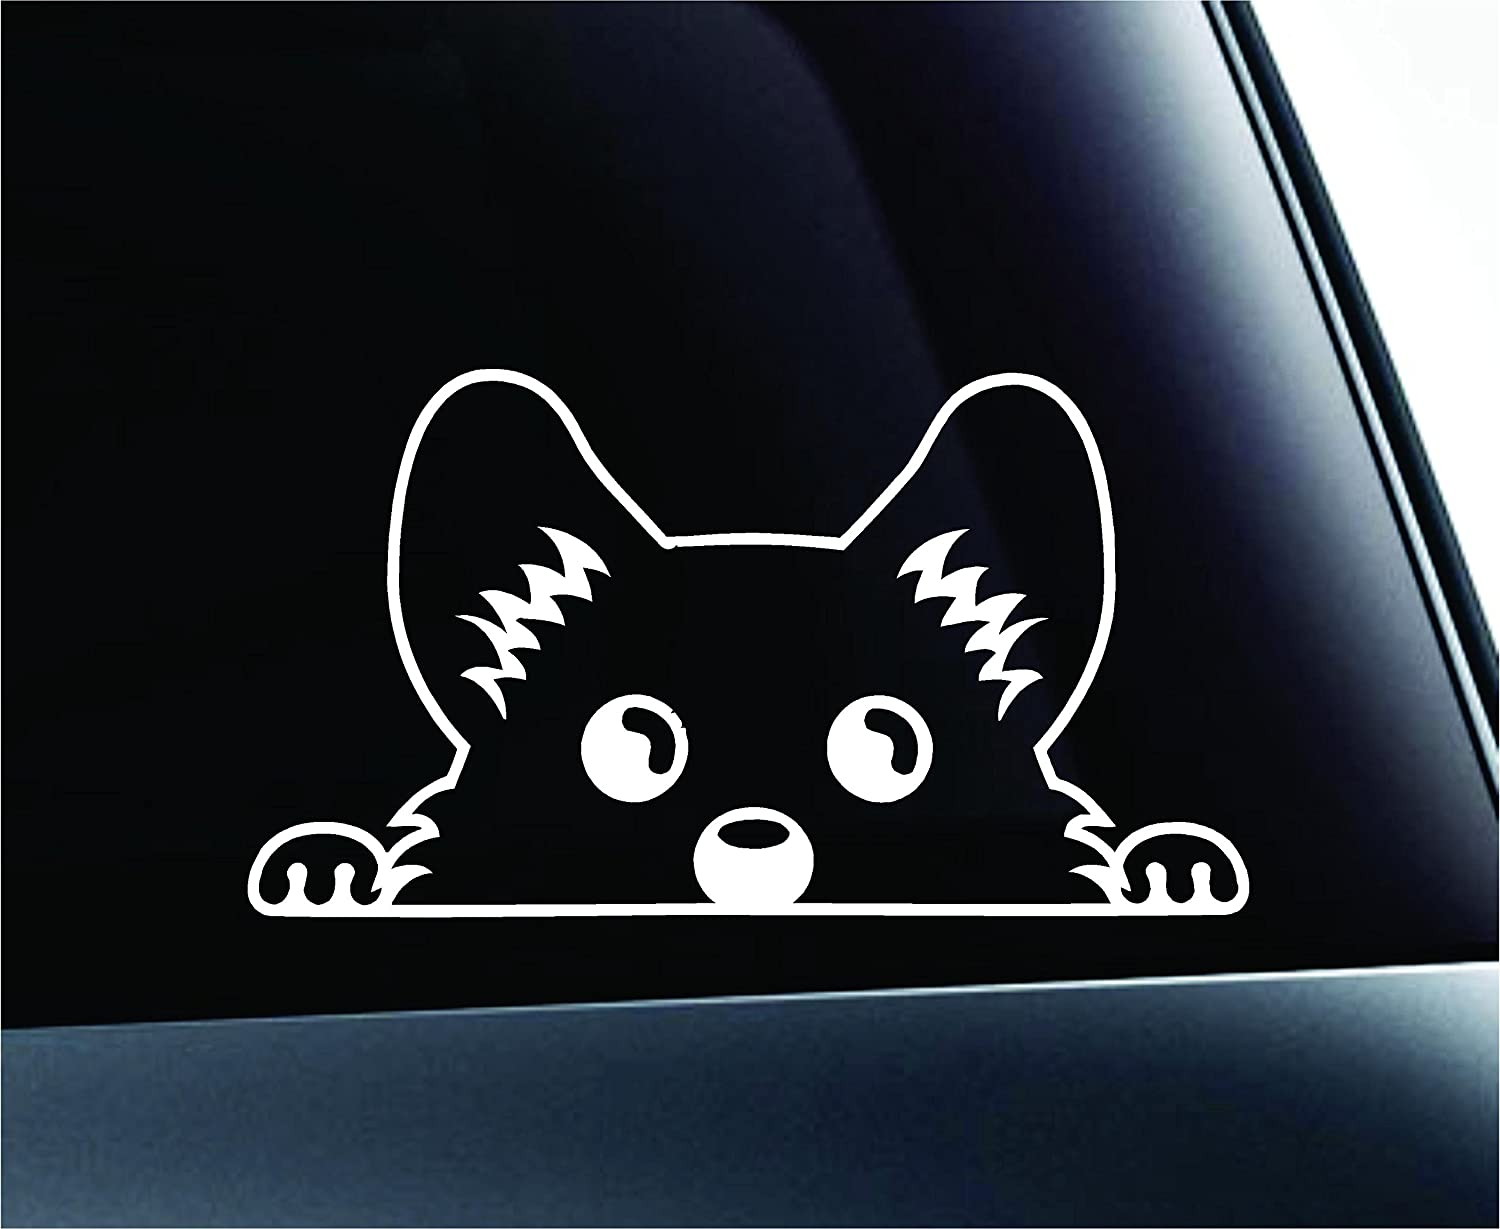 Amazoncom Corgi Peeking Dog Symbol Decal Funny Car Truck Sticker - Window decals amazon